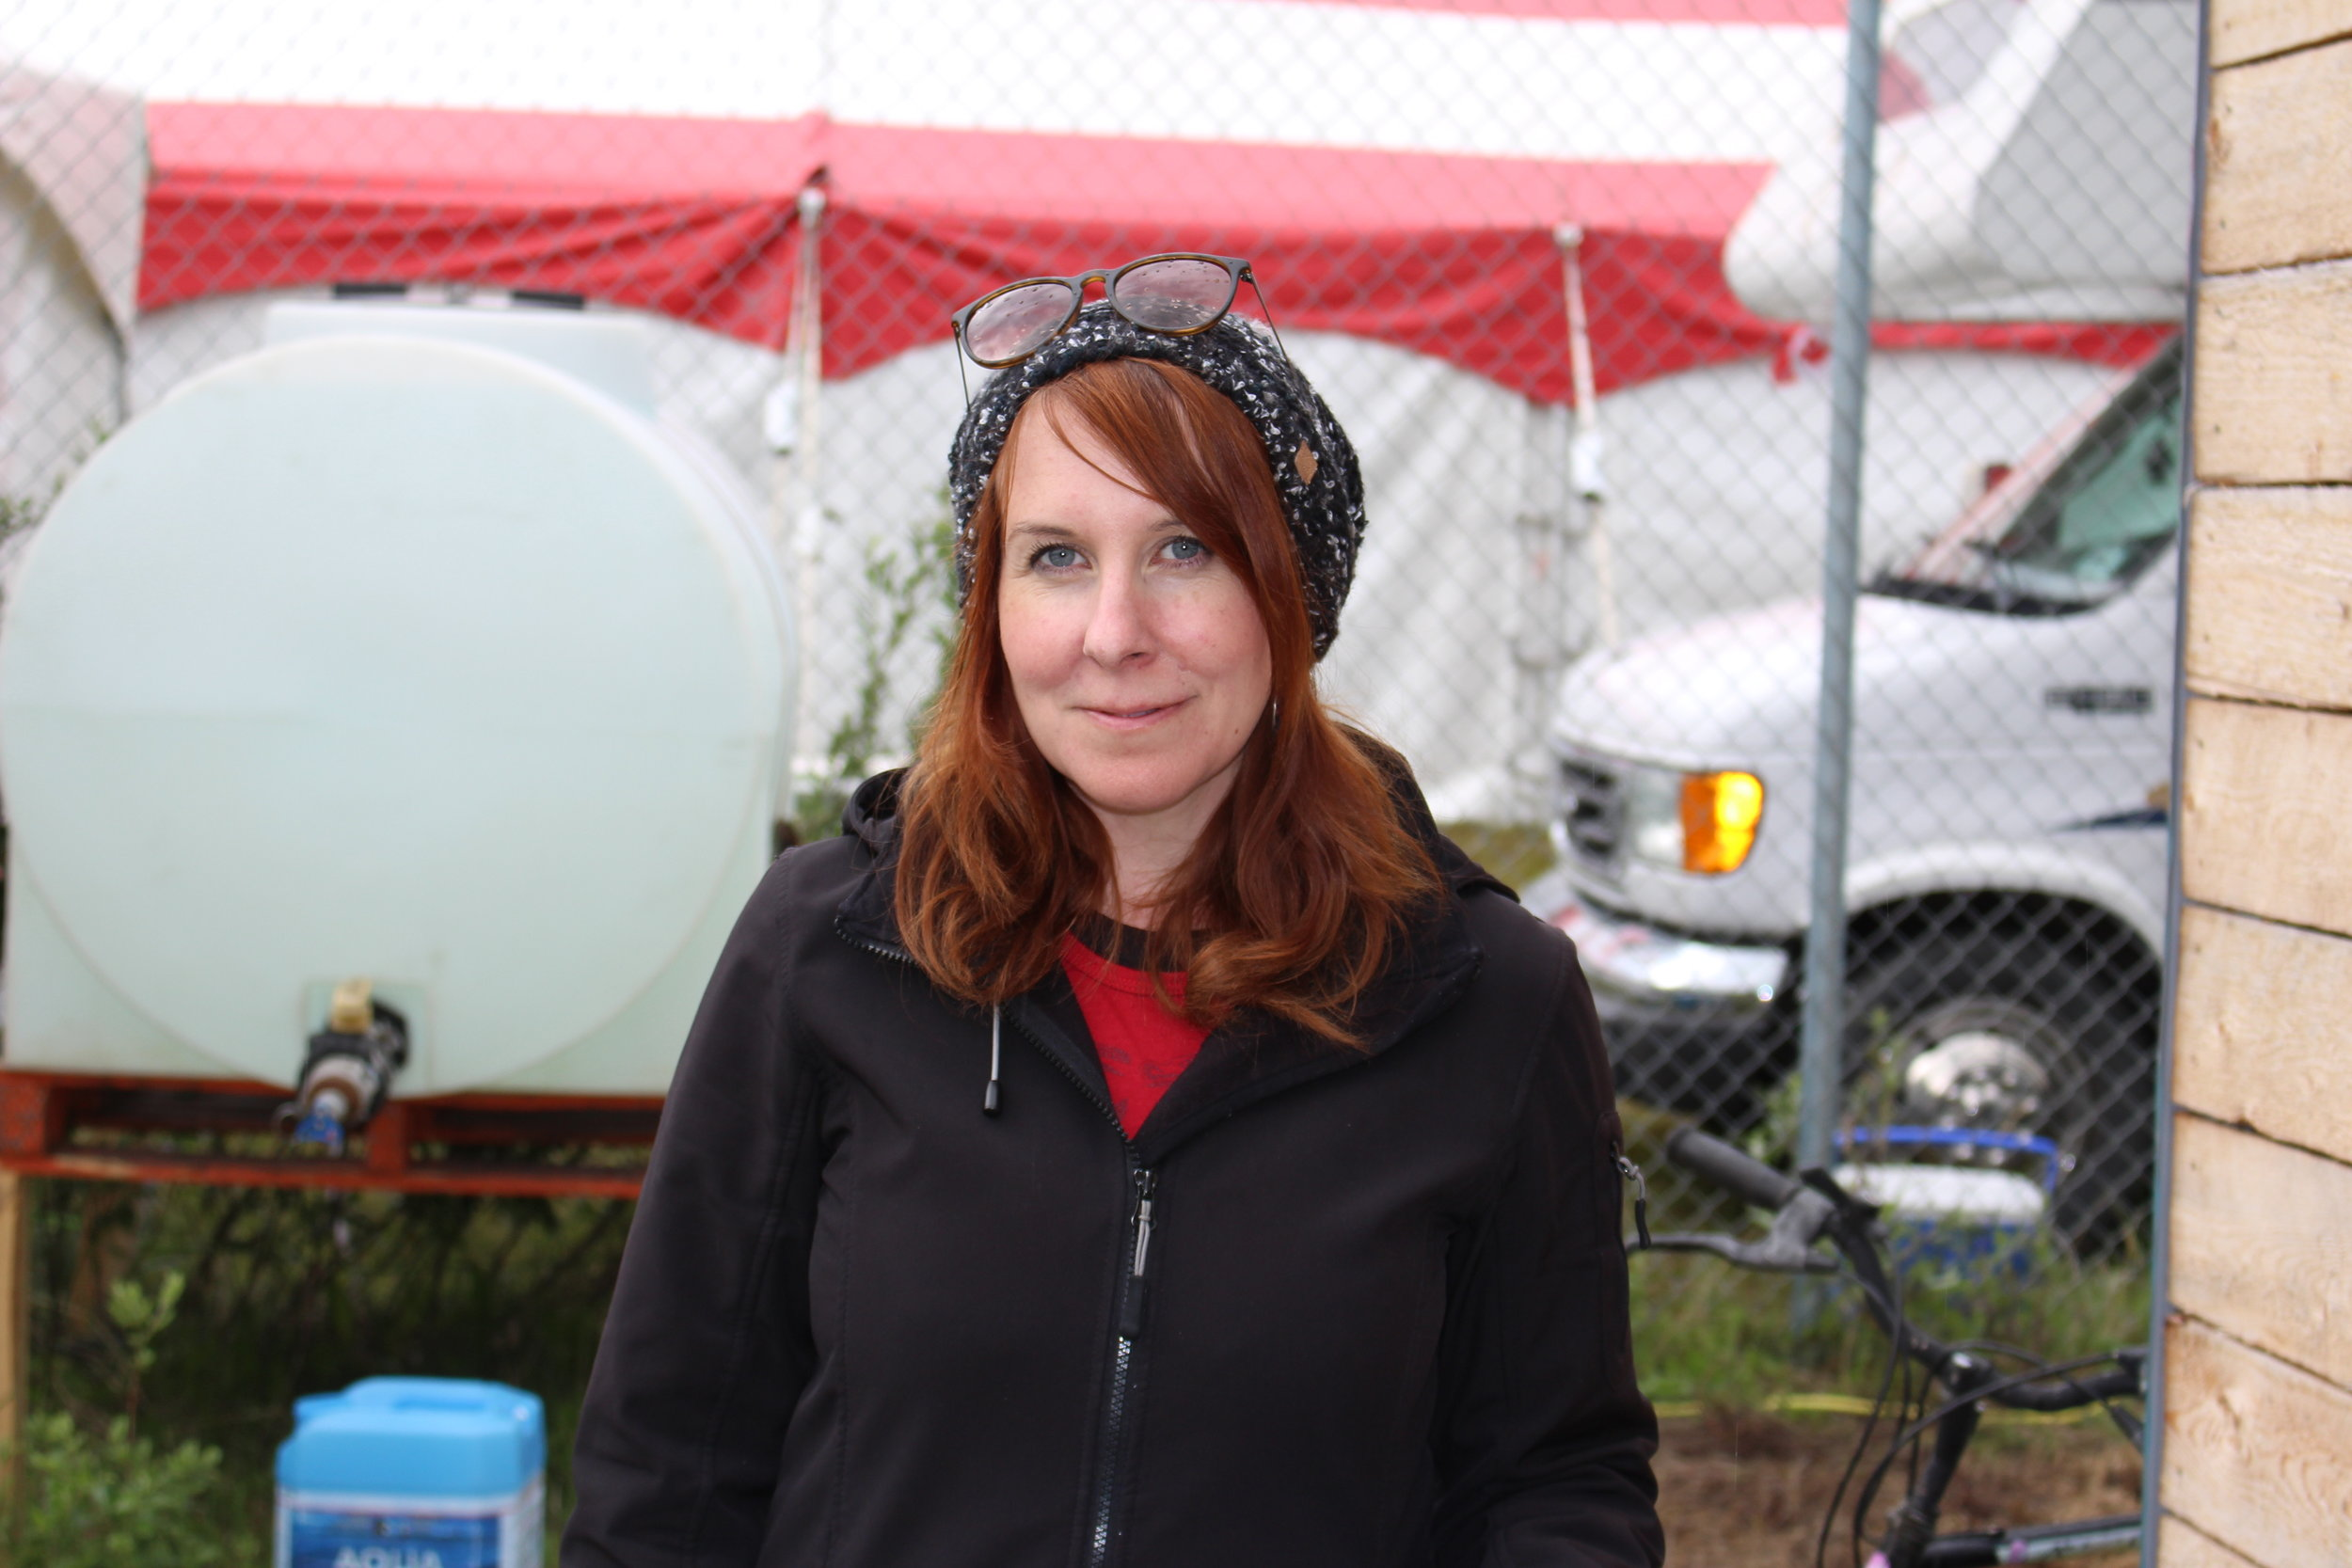 Angela Drainville is in charge of producing the entire Atlin Arts and Music Festival this year. Photo by Amy Burlock